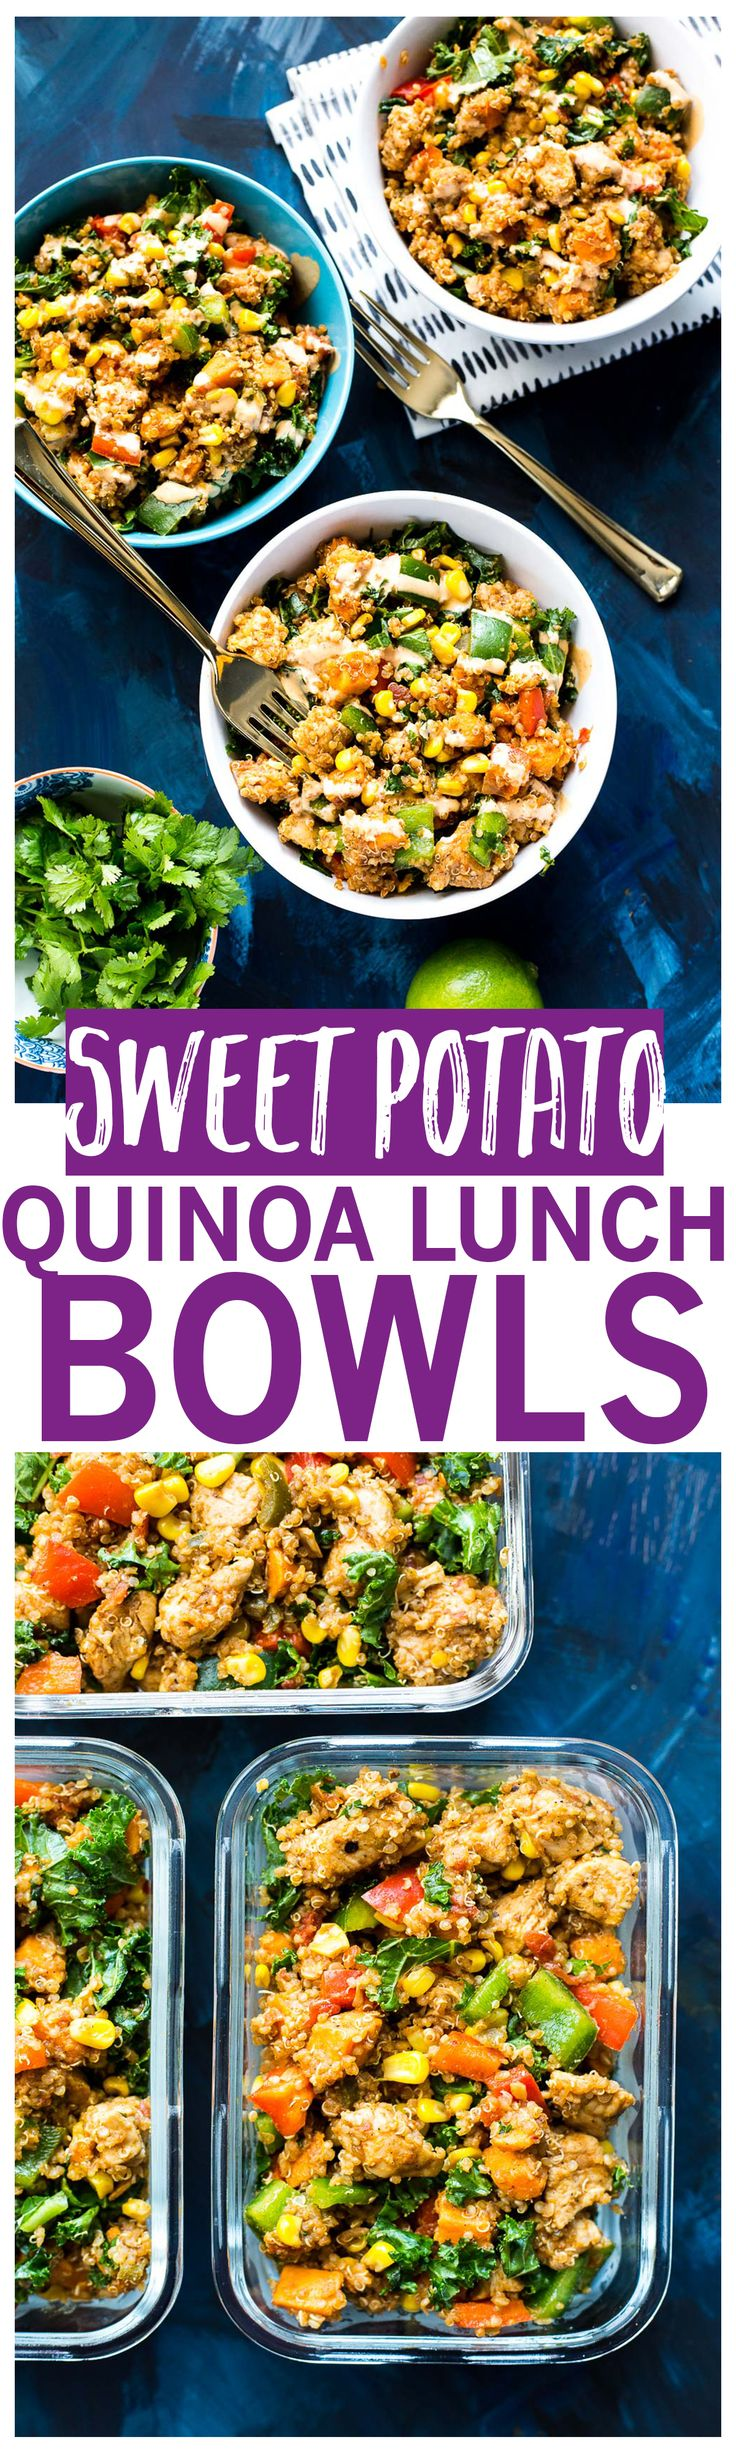 One Pot Sweet Potato, Kale & Quinoa Lunch Bowls | Chipotle Sauce | Take 45 min to meal prep this weekend! (One Pot Pasta Recipes)